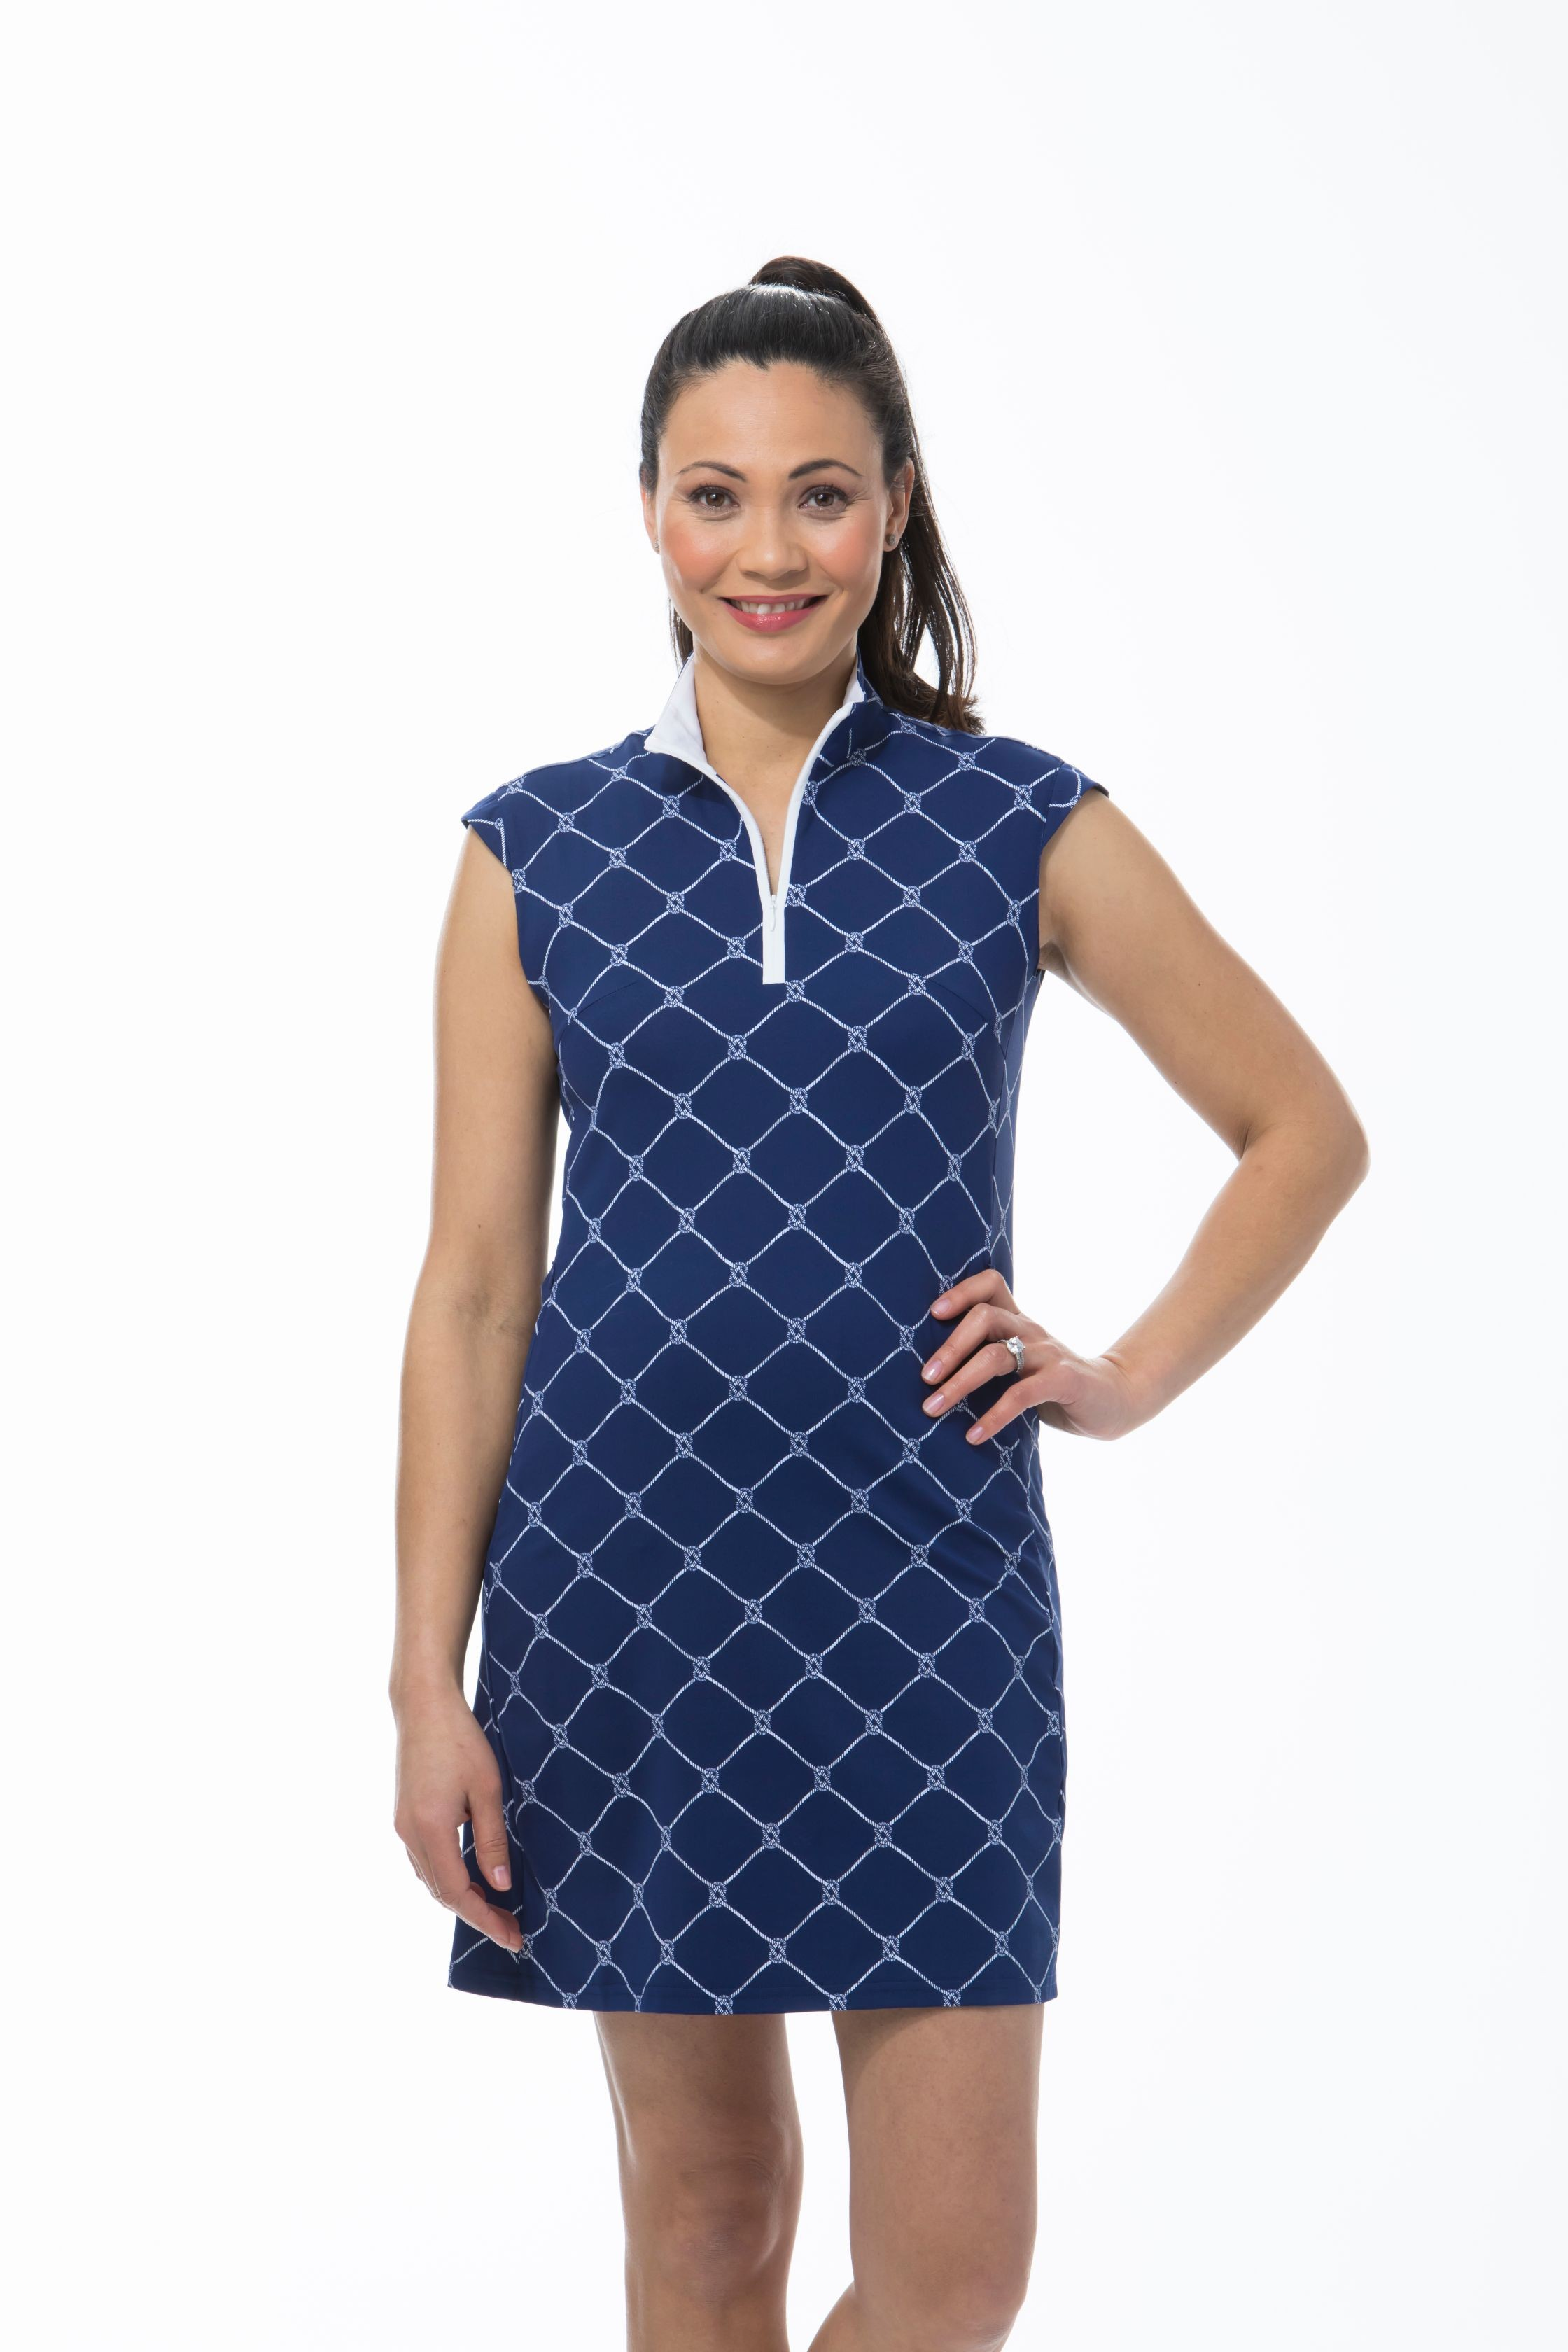 900722I. SanSoleil SolStyle ICE. Sleeveless Zip Mock Dress. Knotical Navy. Blue